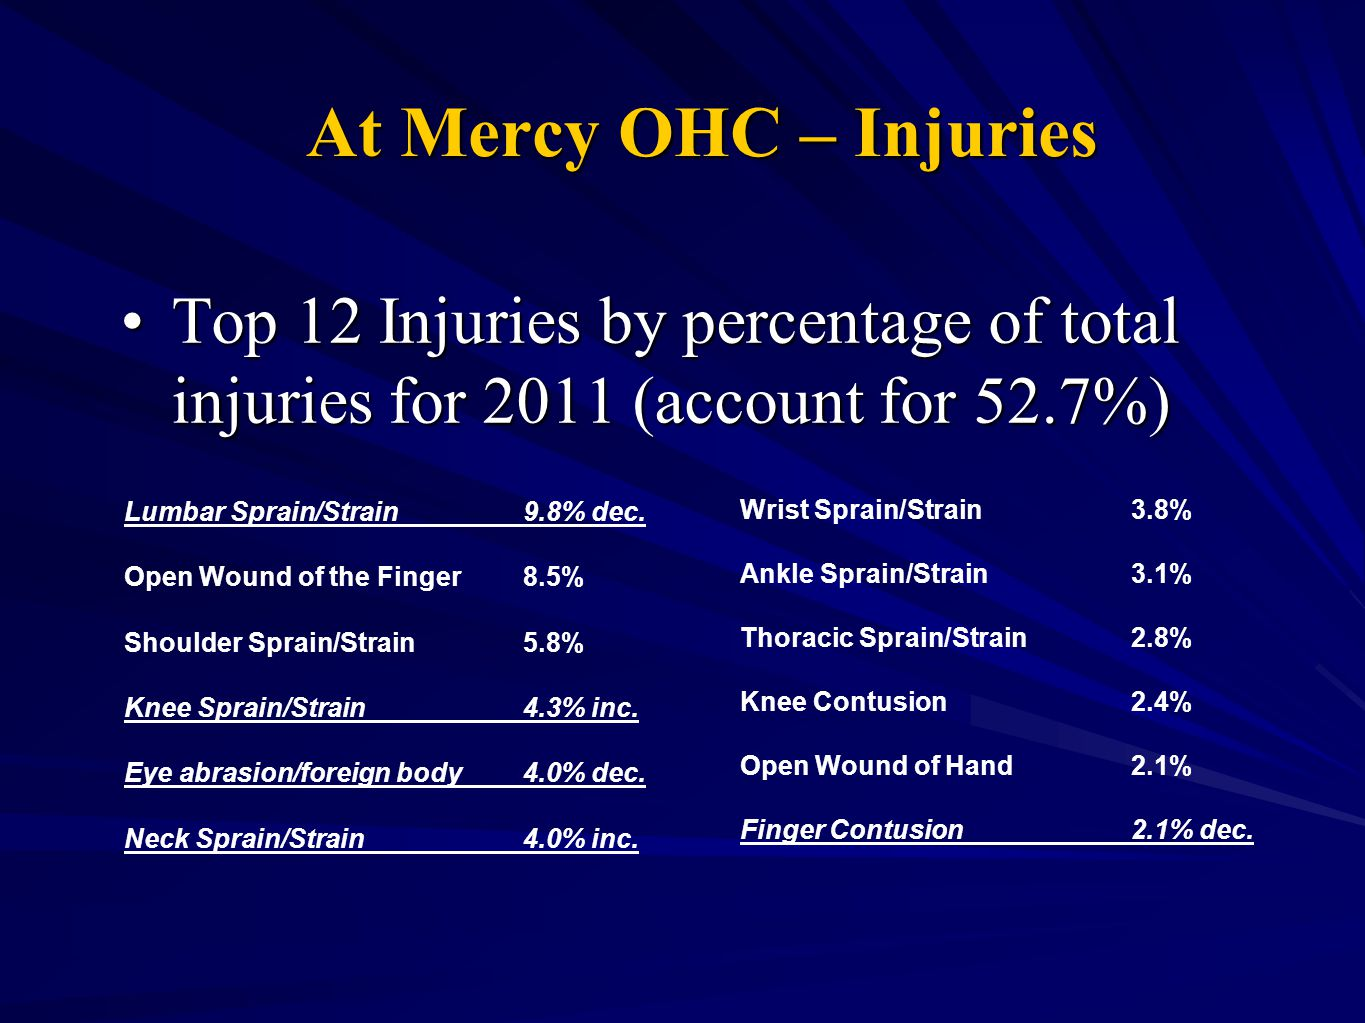 At Mercy OHC – Injuries Top 12 Injuries by percentage of total injuries for 2011 (account for 52.7%)Top 12 Injuries by percentage of total injuries fo